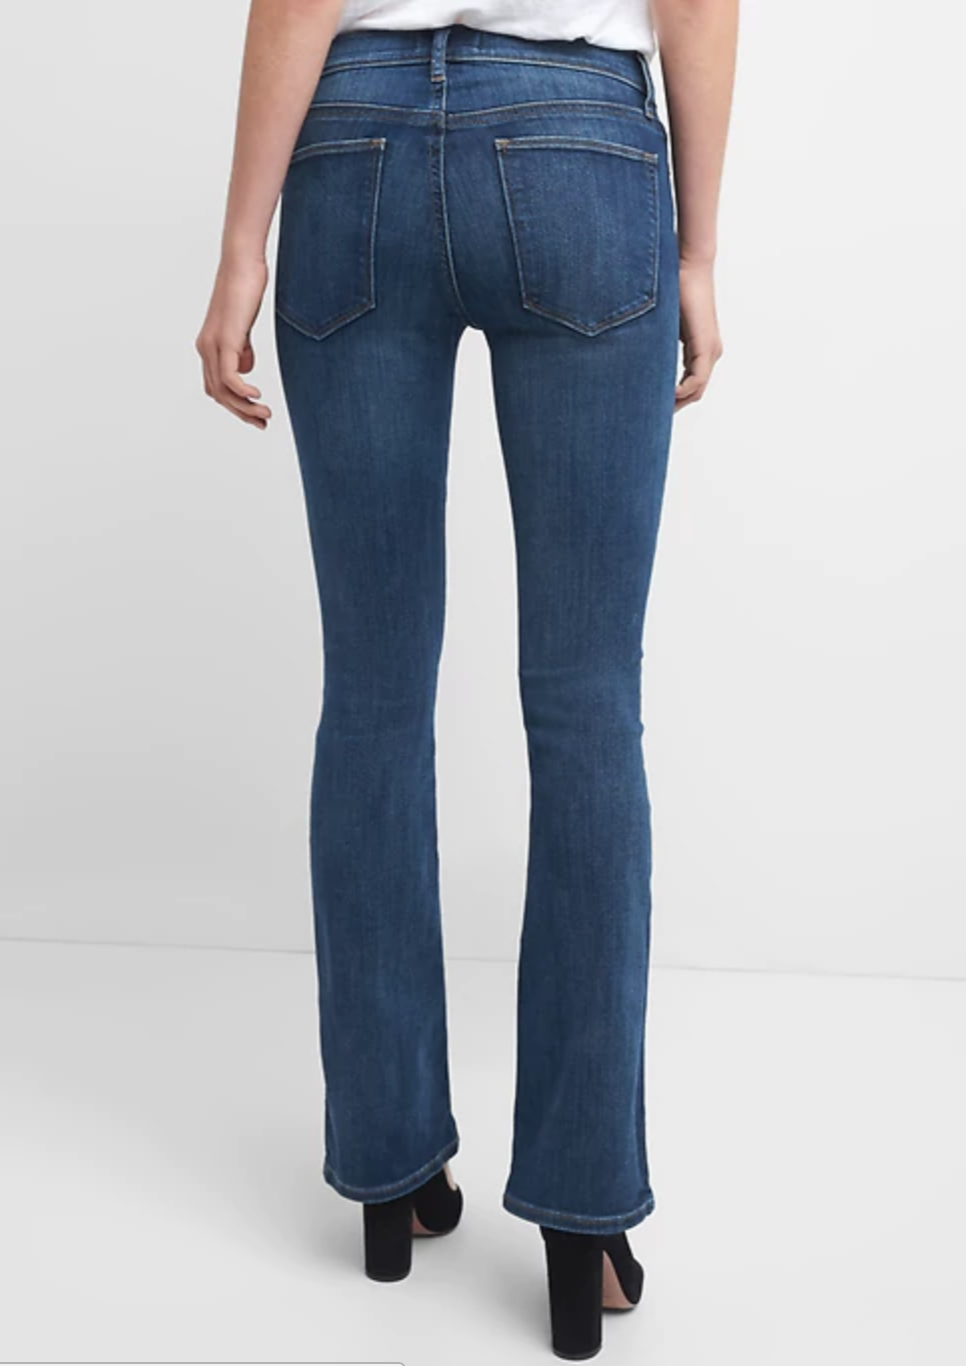 Gap jeans in store coupon